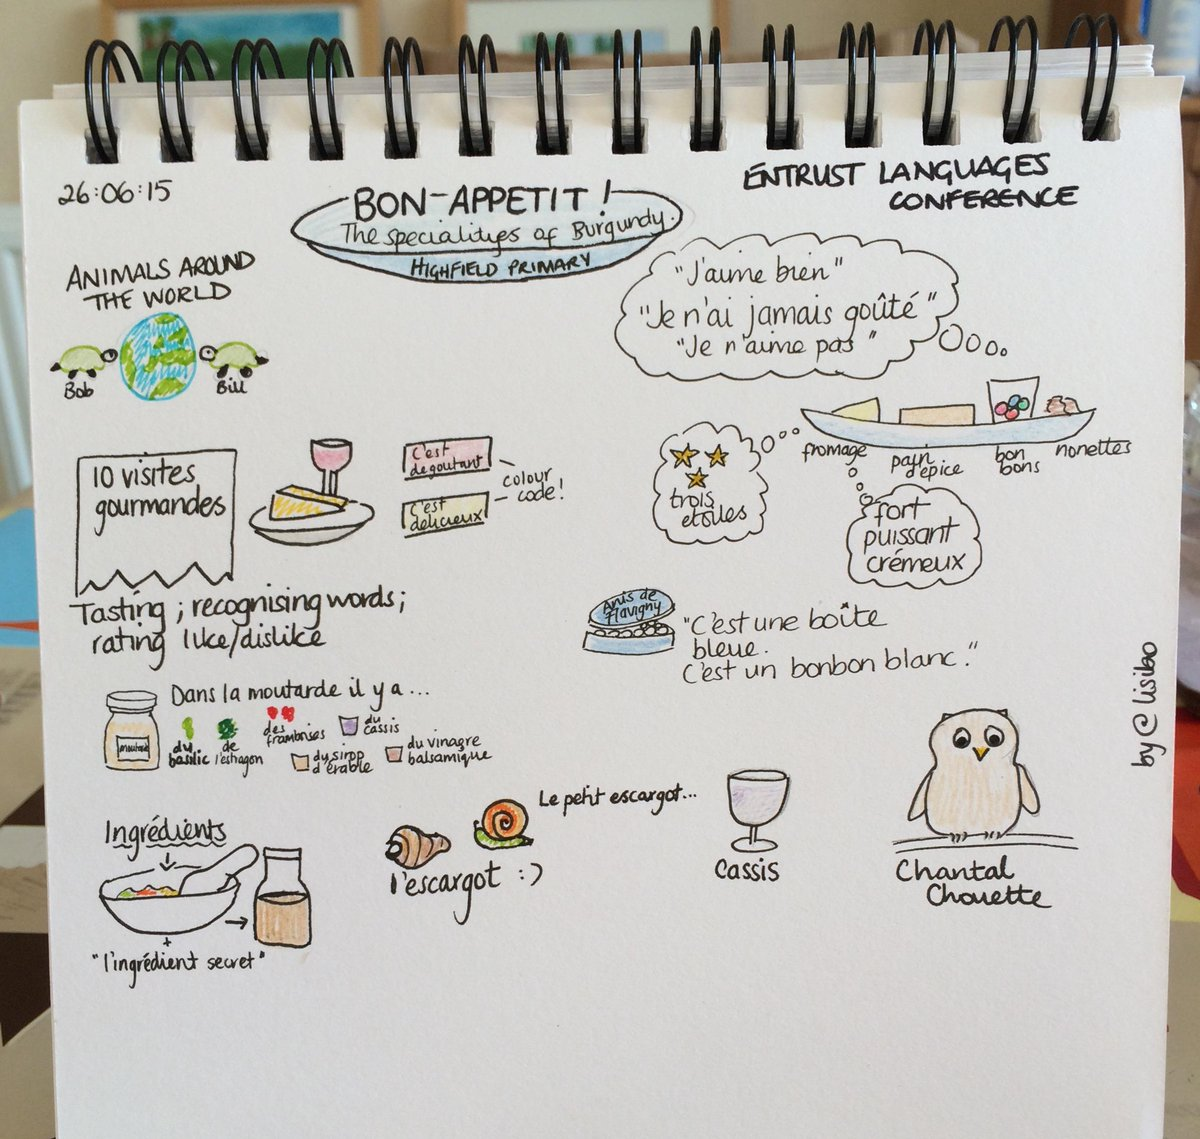 #sketchnote of excellent session at #EntrustLang about French language learning linked to food tasting/making :) http://t.co/z8dmycBS1F